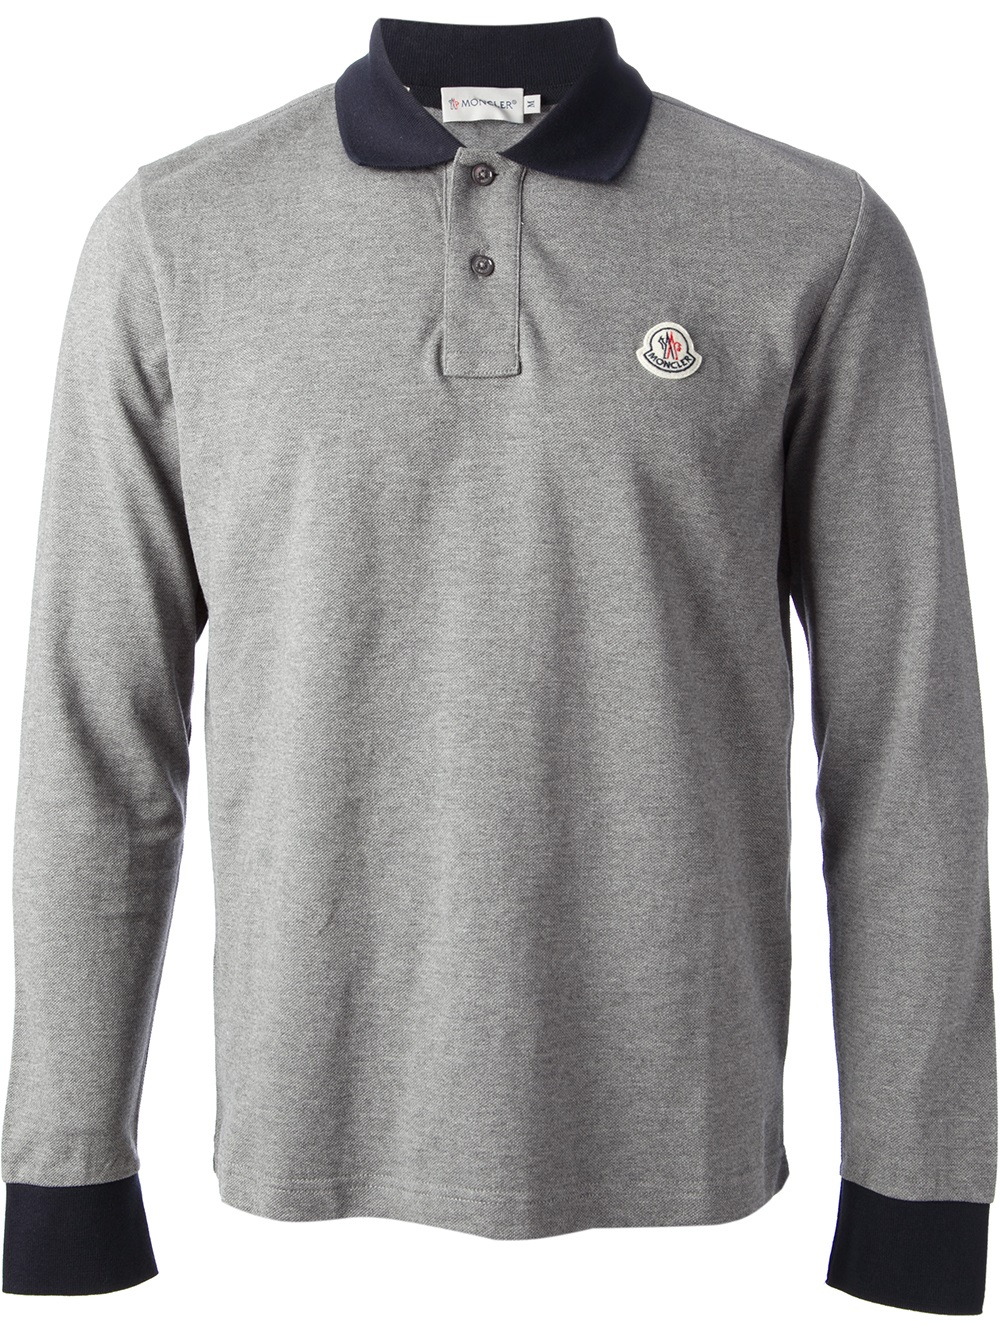 0eb95d3f8174 Moncler Long Sleeve Polo Shirt in Gray for Men - Lyst